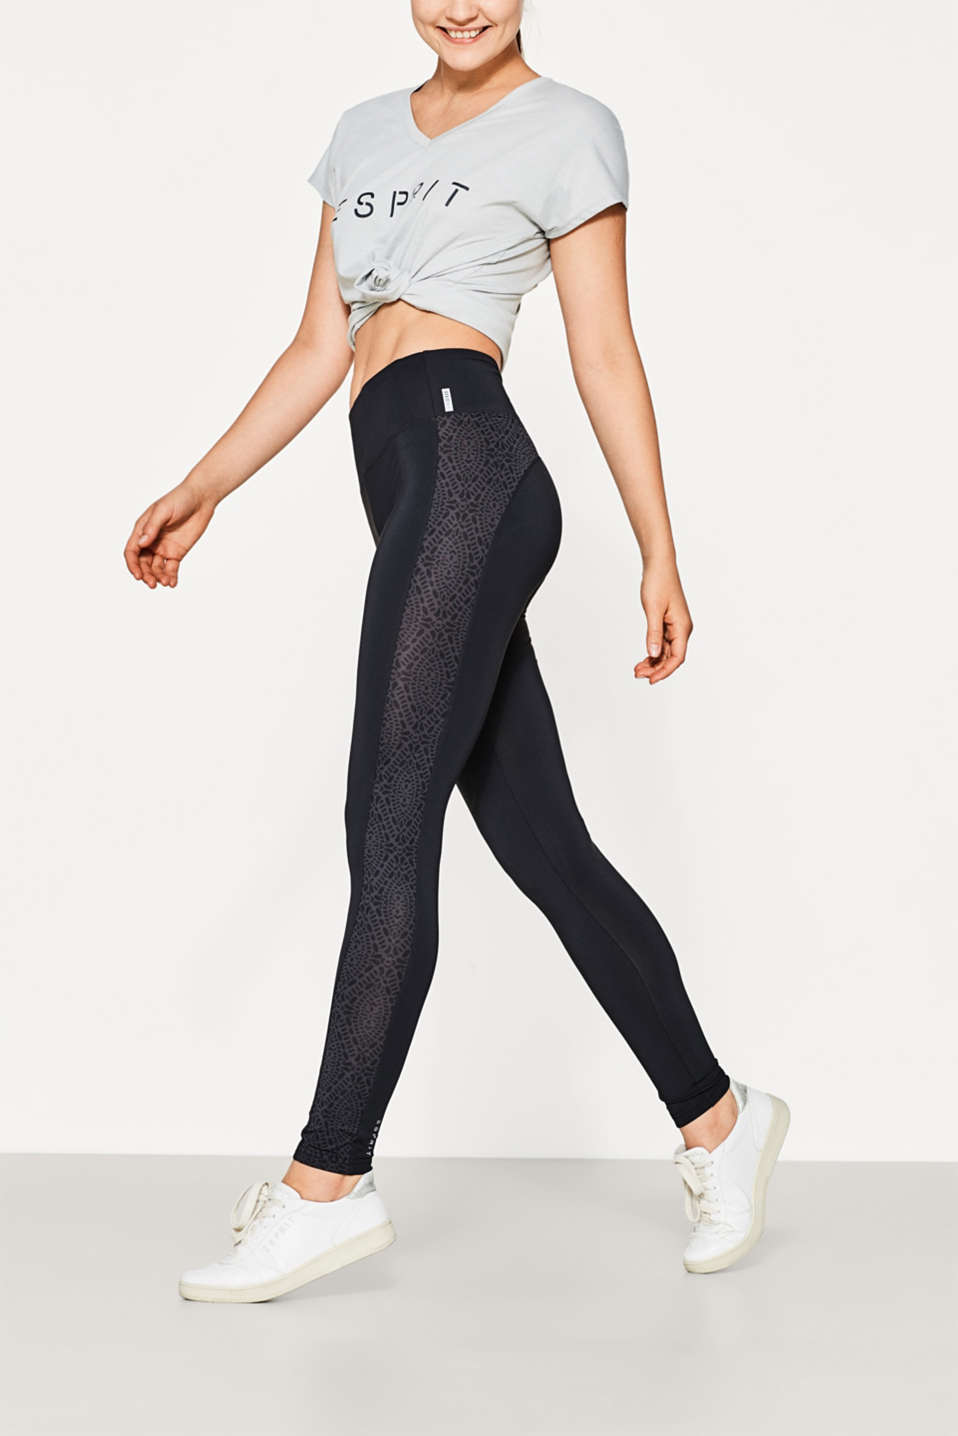 Esprit - Leggings with prints at the sides, E-DRY